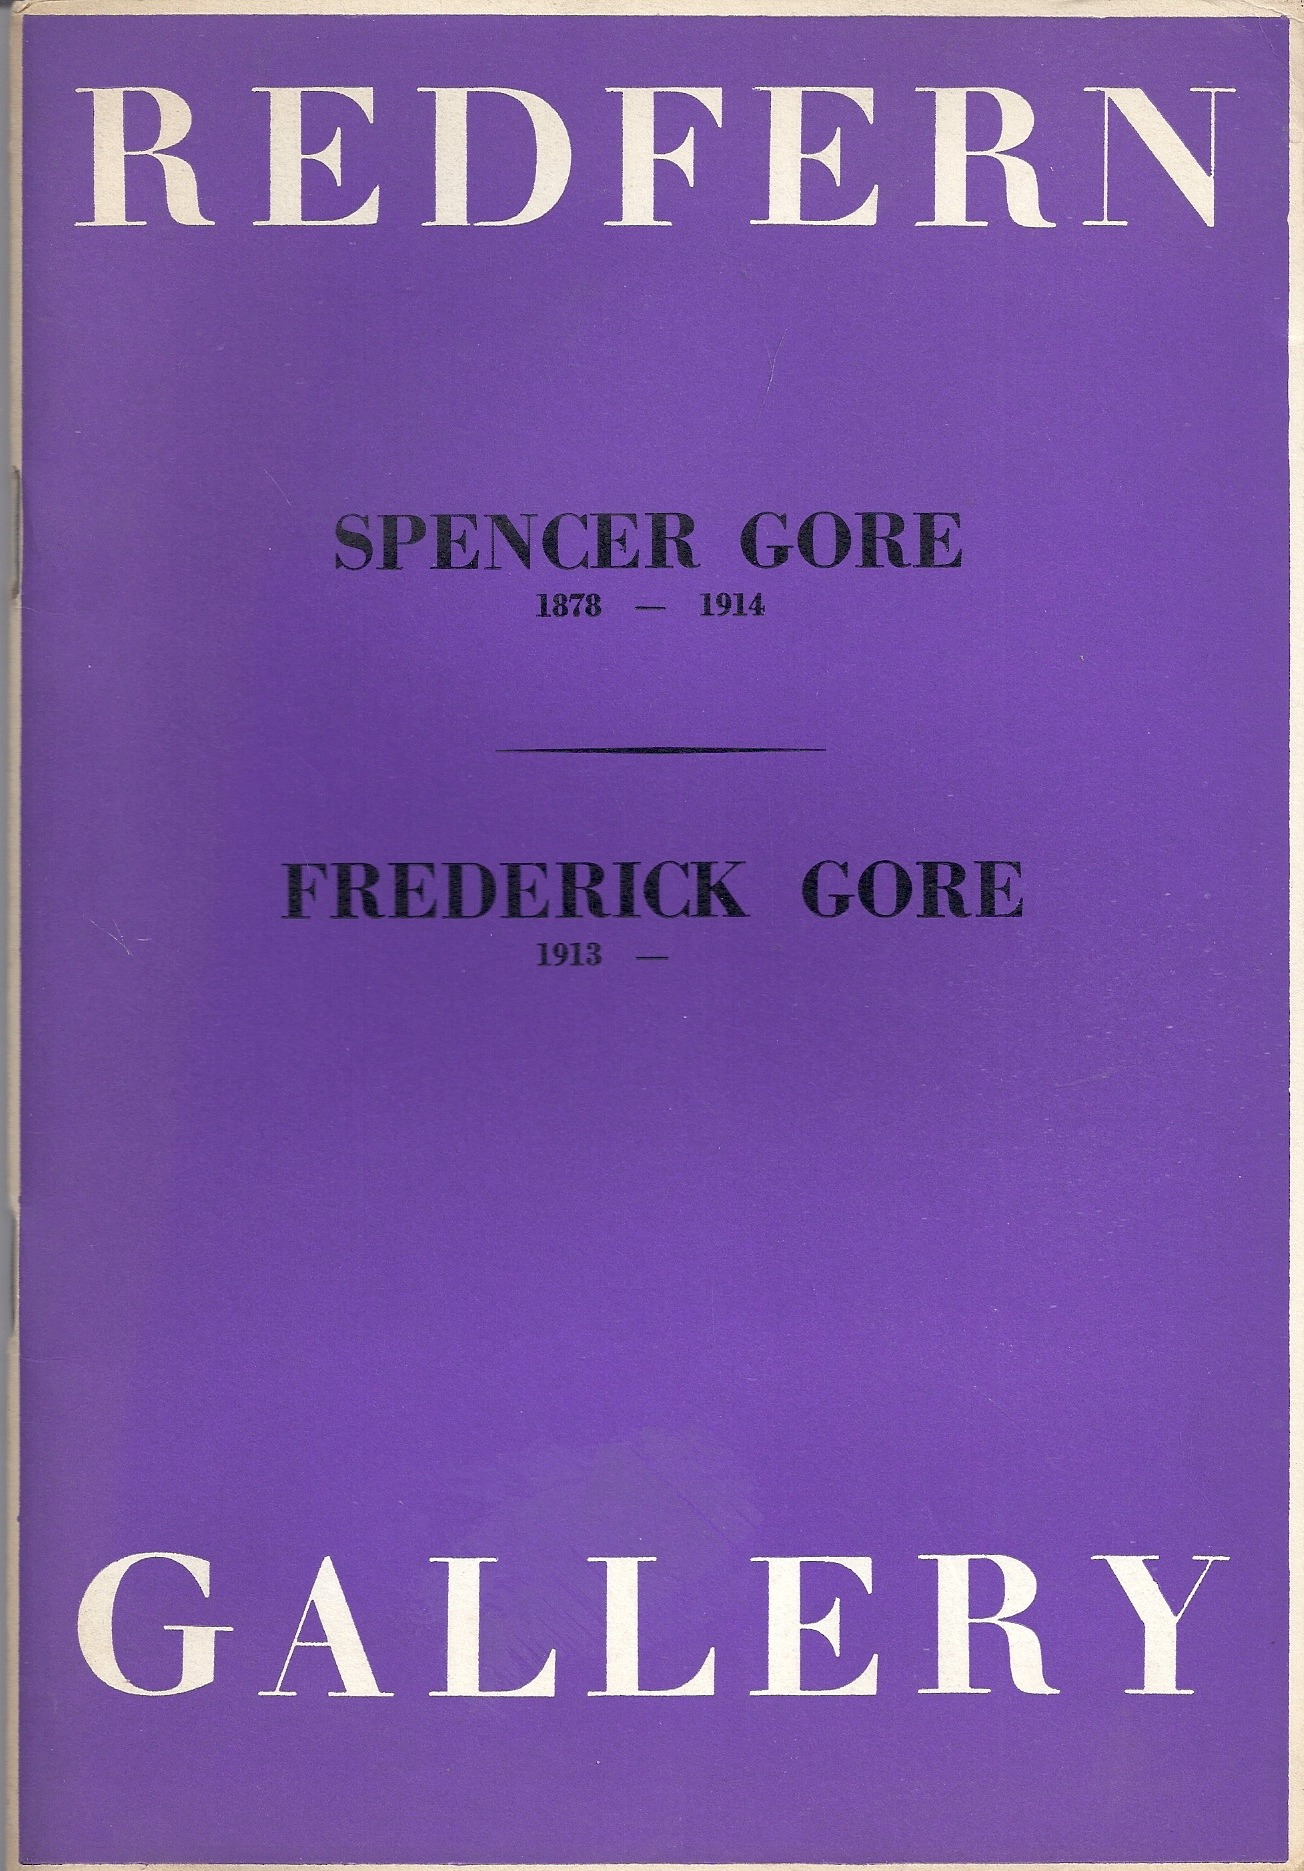 Image for Spencer Gore (1878-1914) / Frederick Gore (1913-)